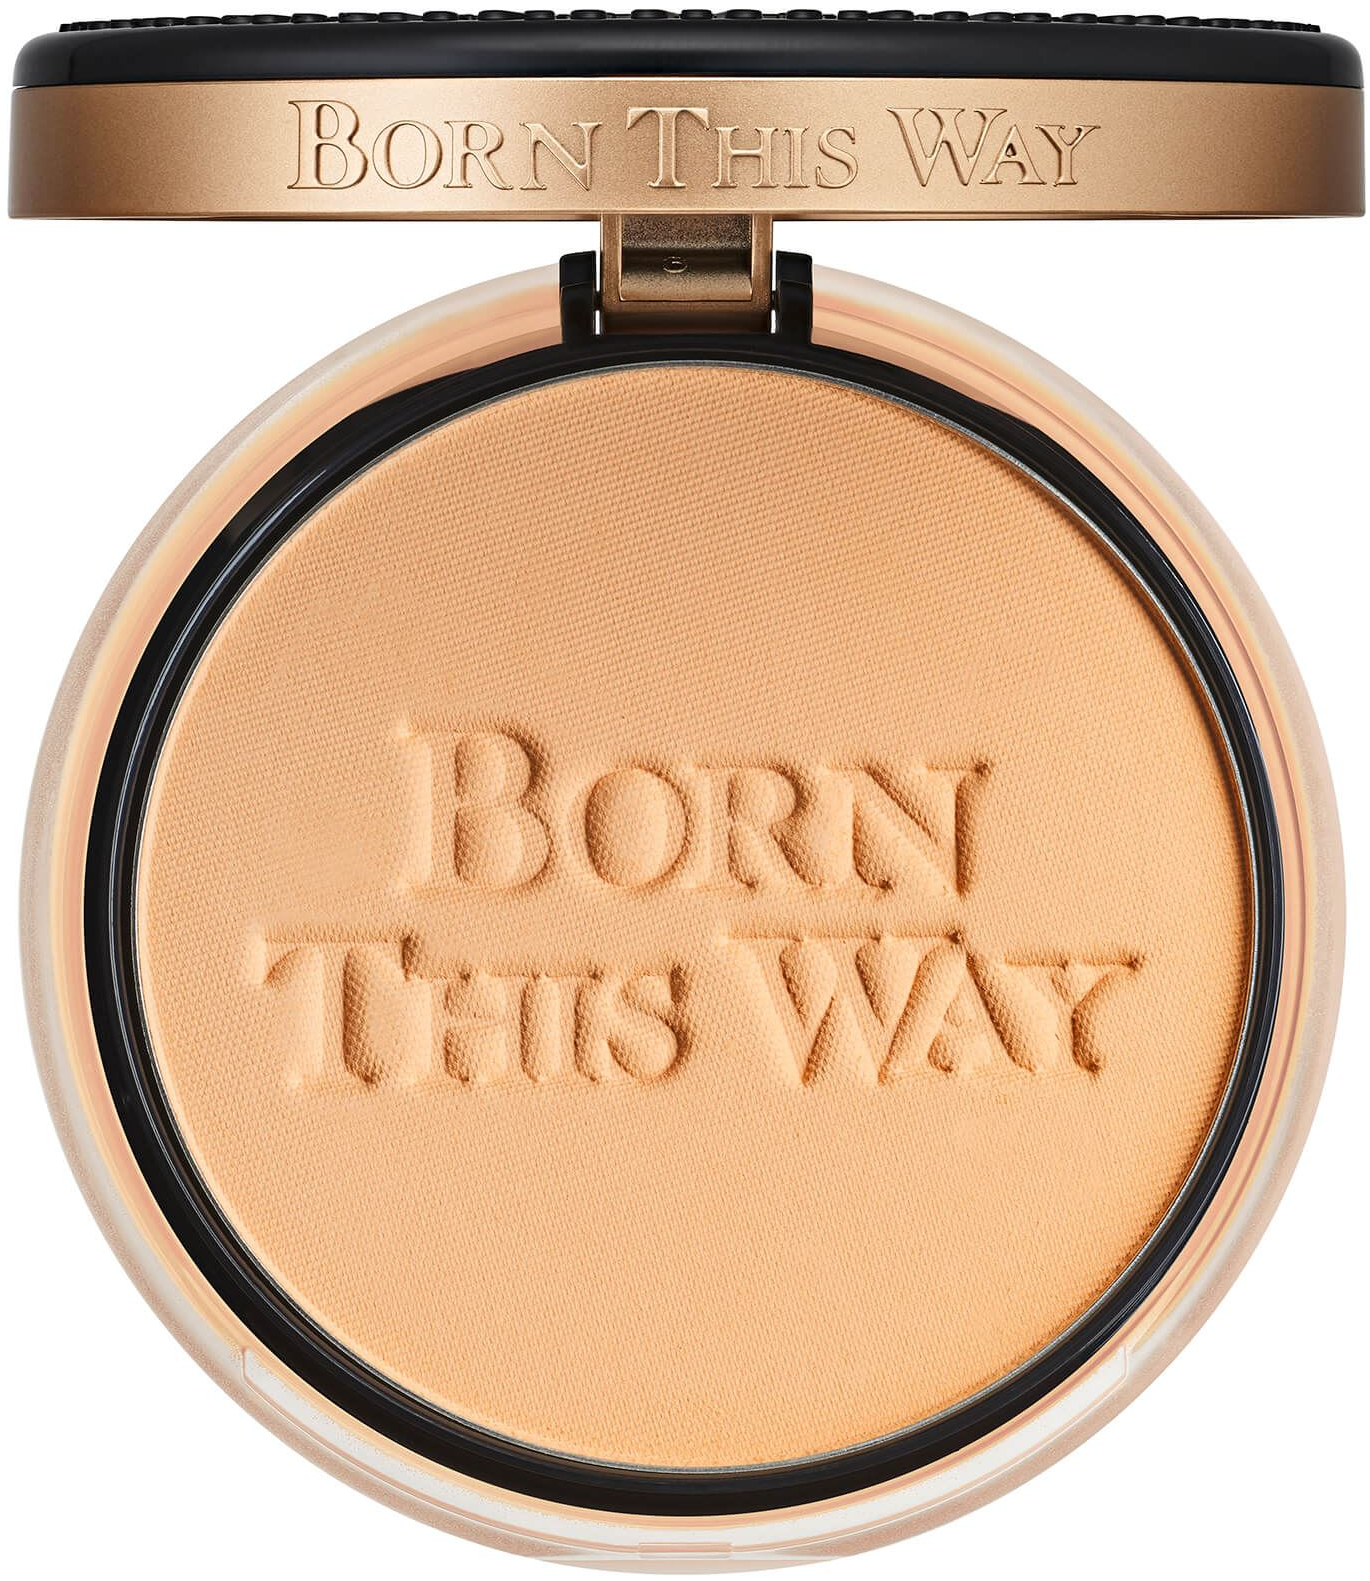 Born This Way Multi-Use Complexion Powder - Too Faced Nude